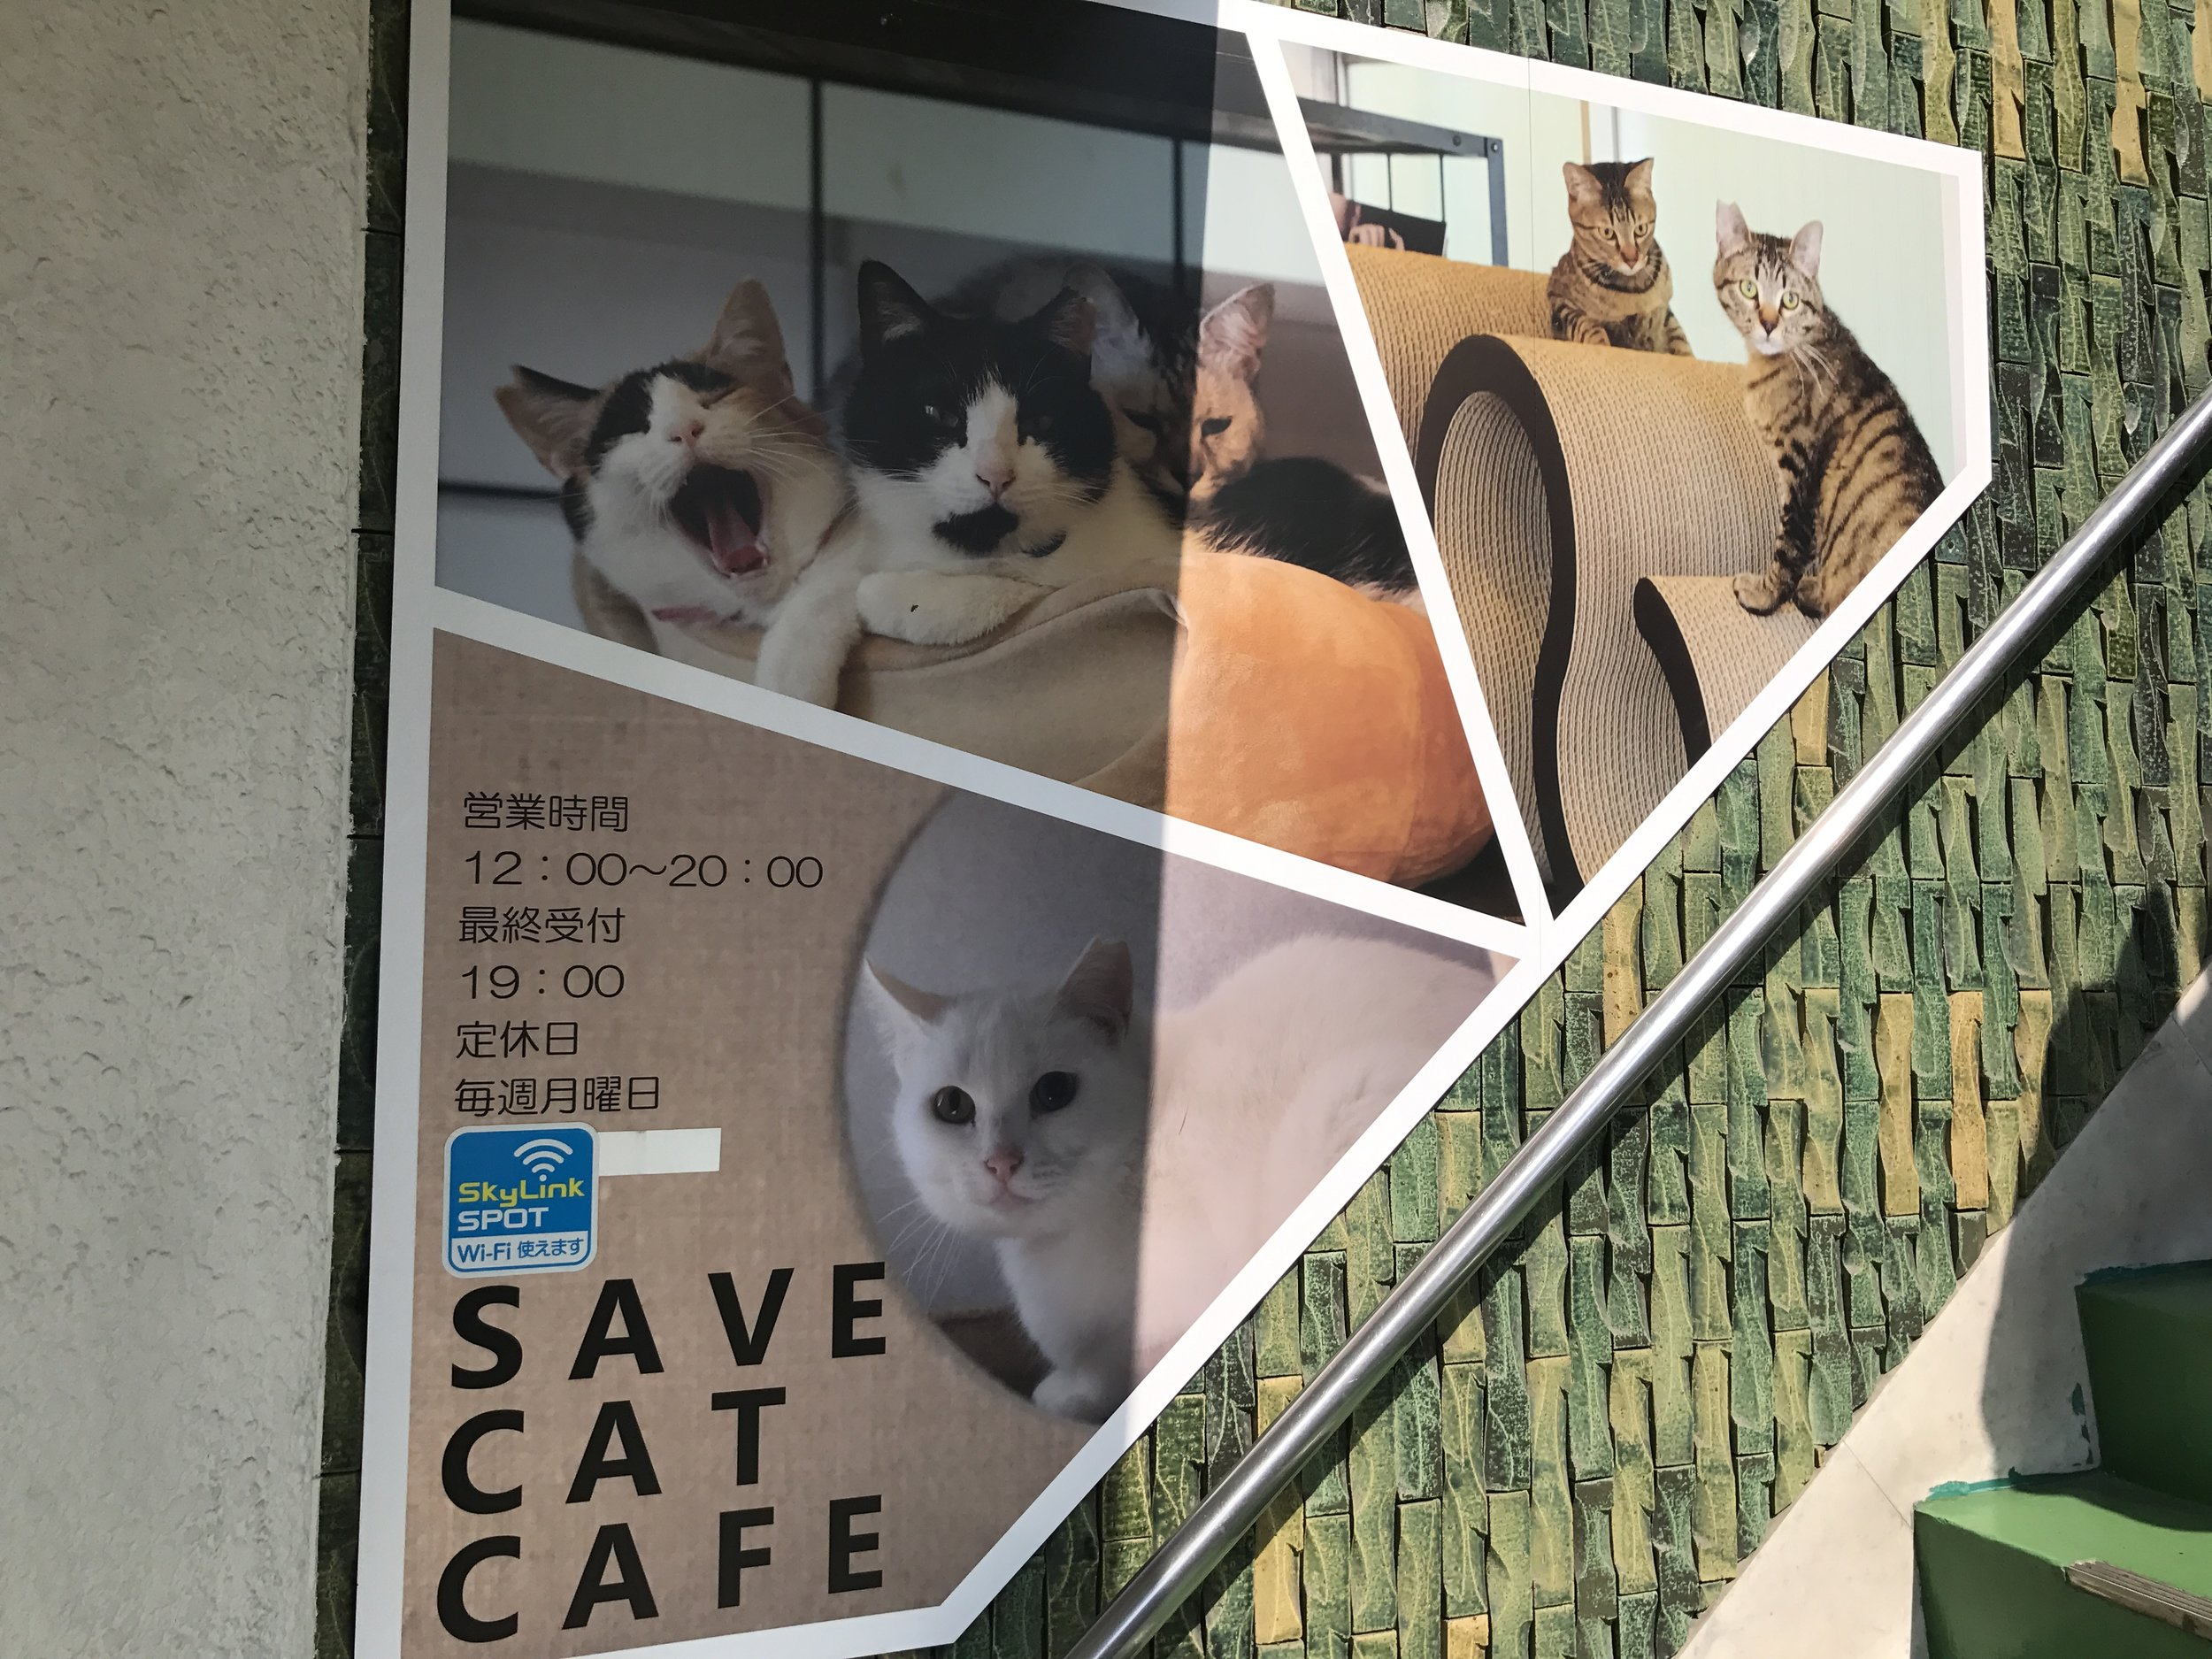 Save Cat Cafe is located near the Tenma metro station in Osaka, Japan